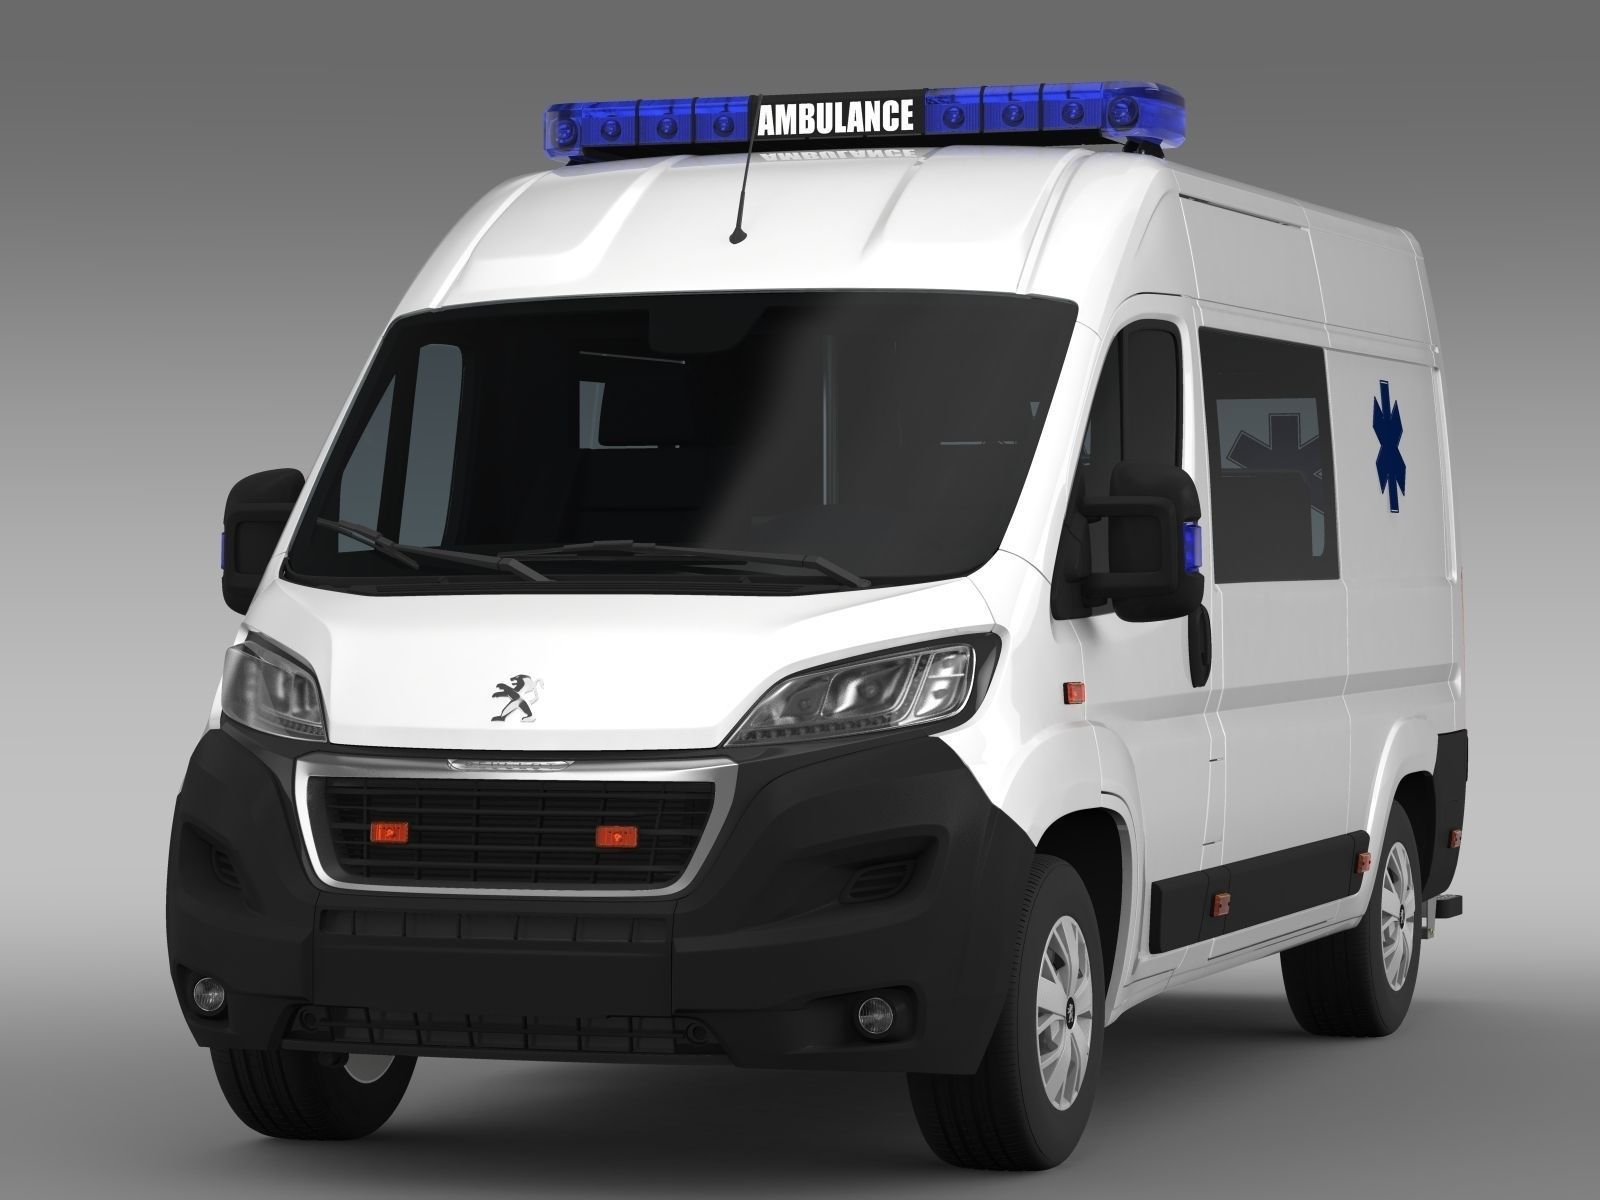 peugeot boxer van ambulance 2015 3d model max obj 3ds. Black Bedroom Furniture Sets. Home Design Ideas